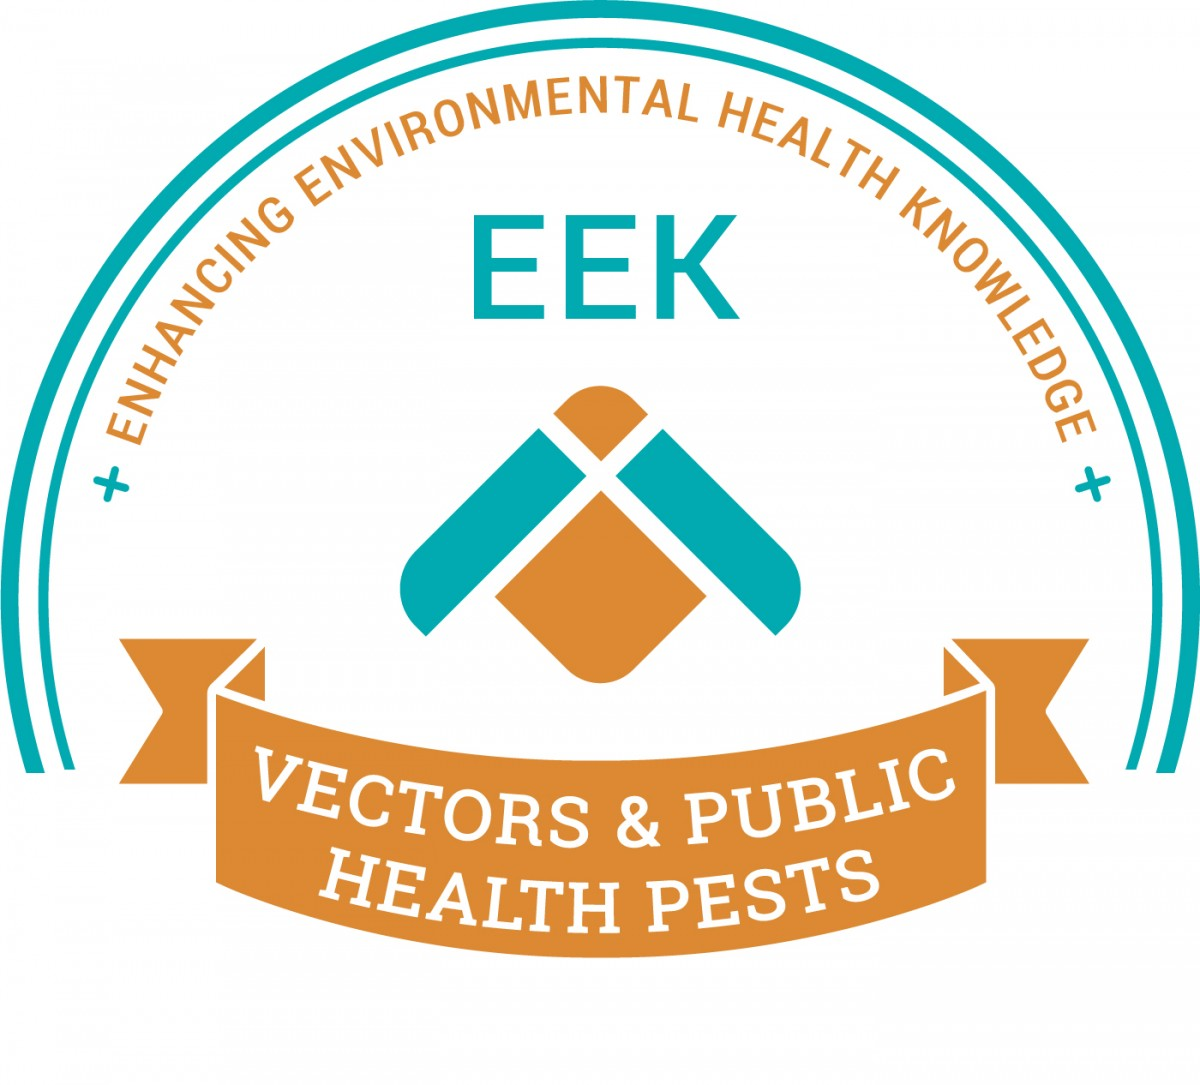 EEK: Vectors & Public Health Pests Virtual Conference 2018 Logo